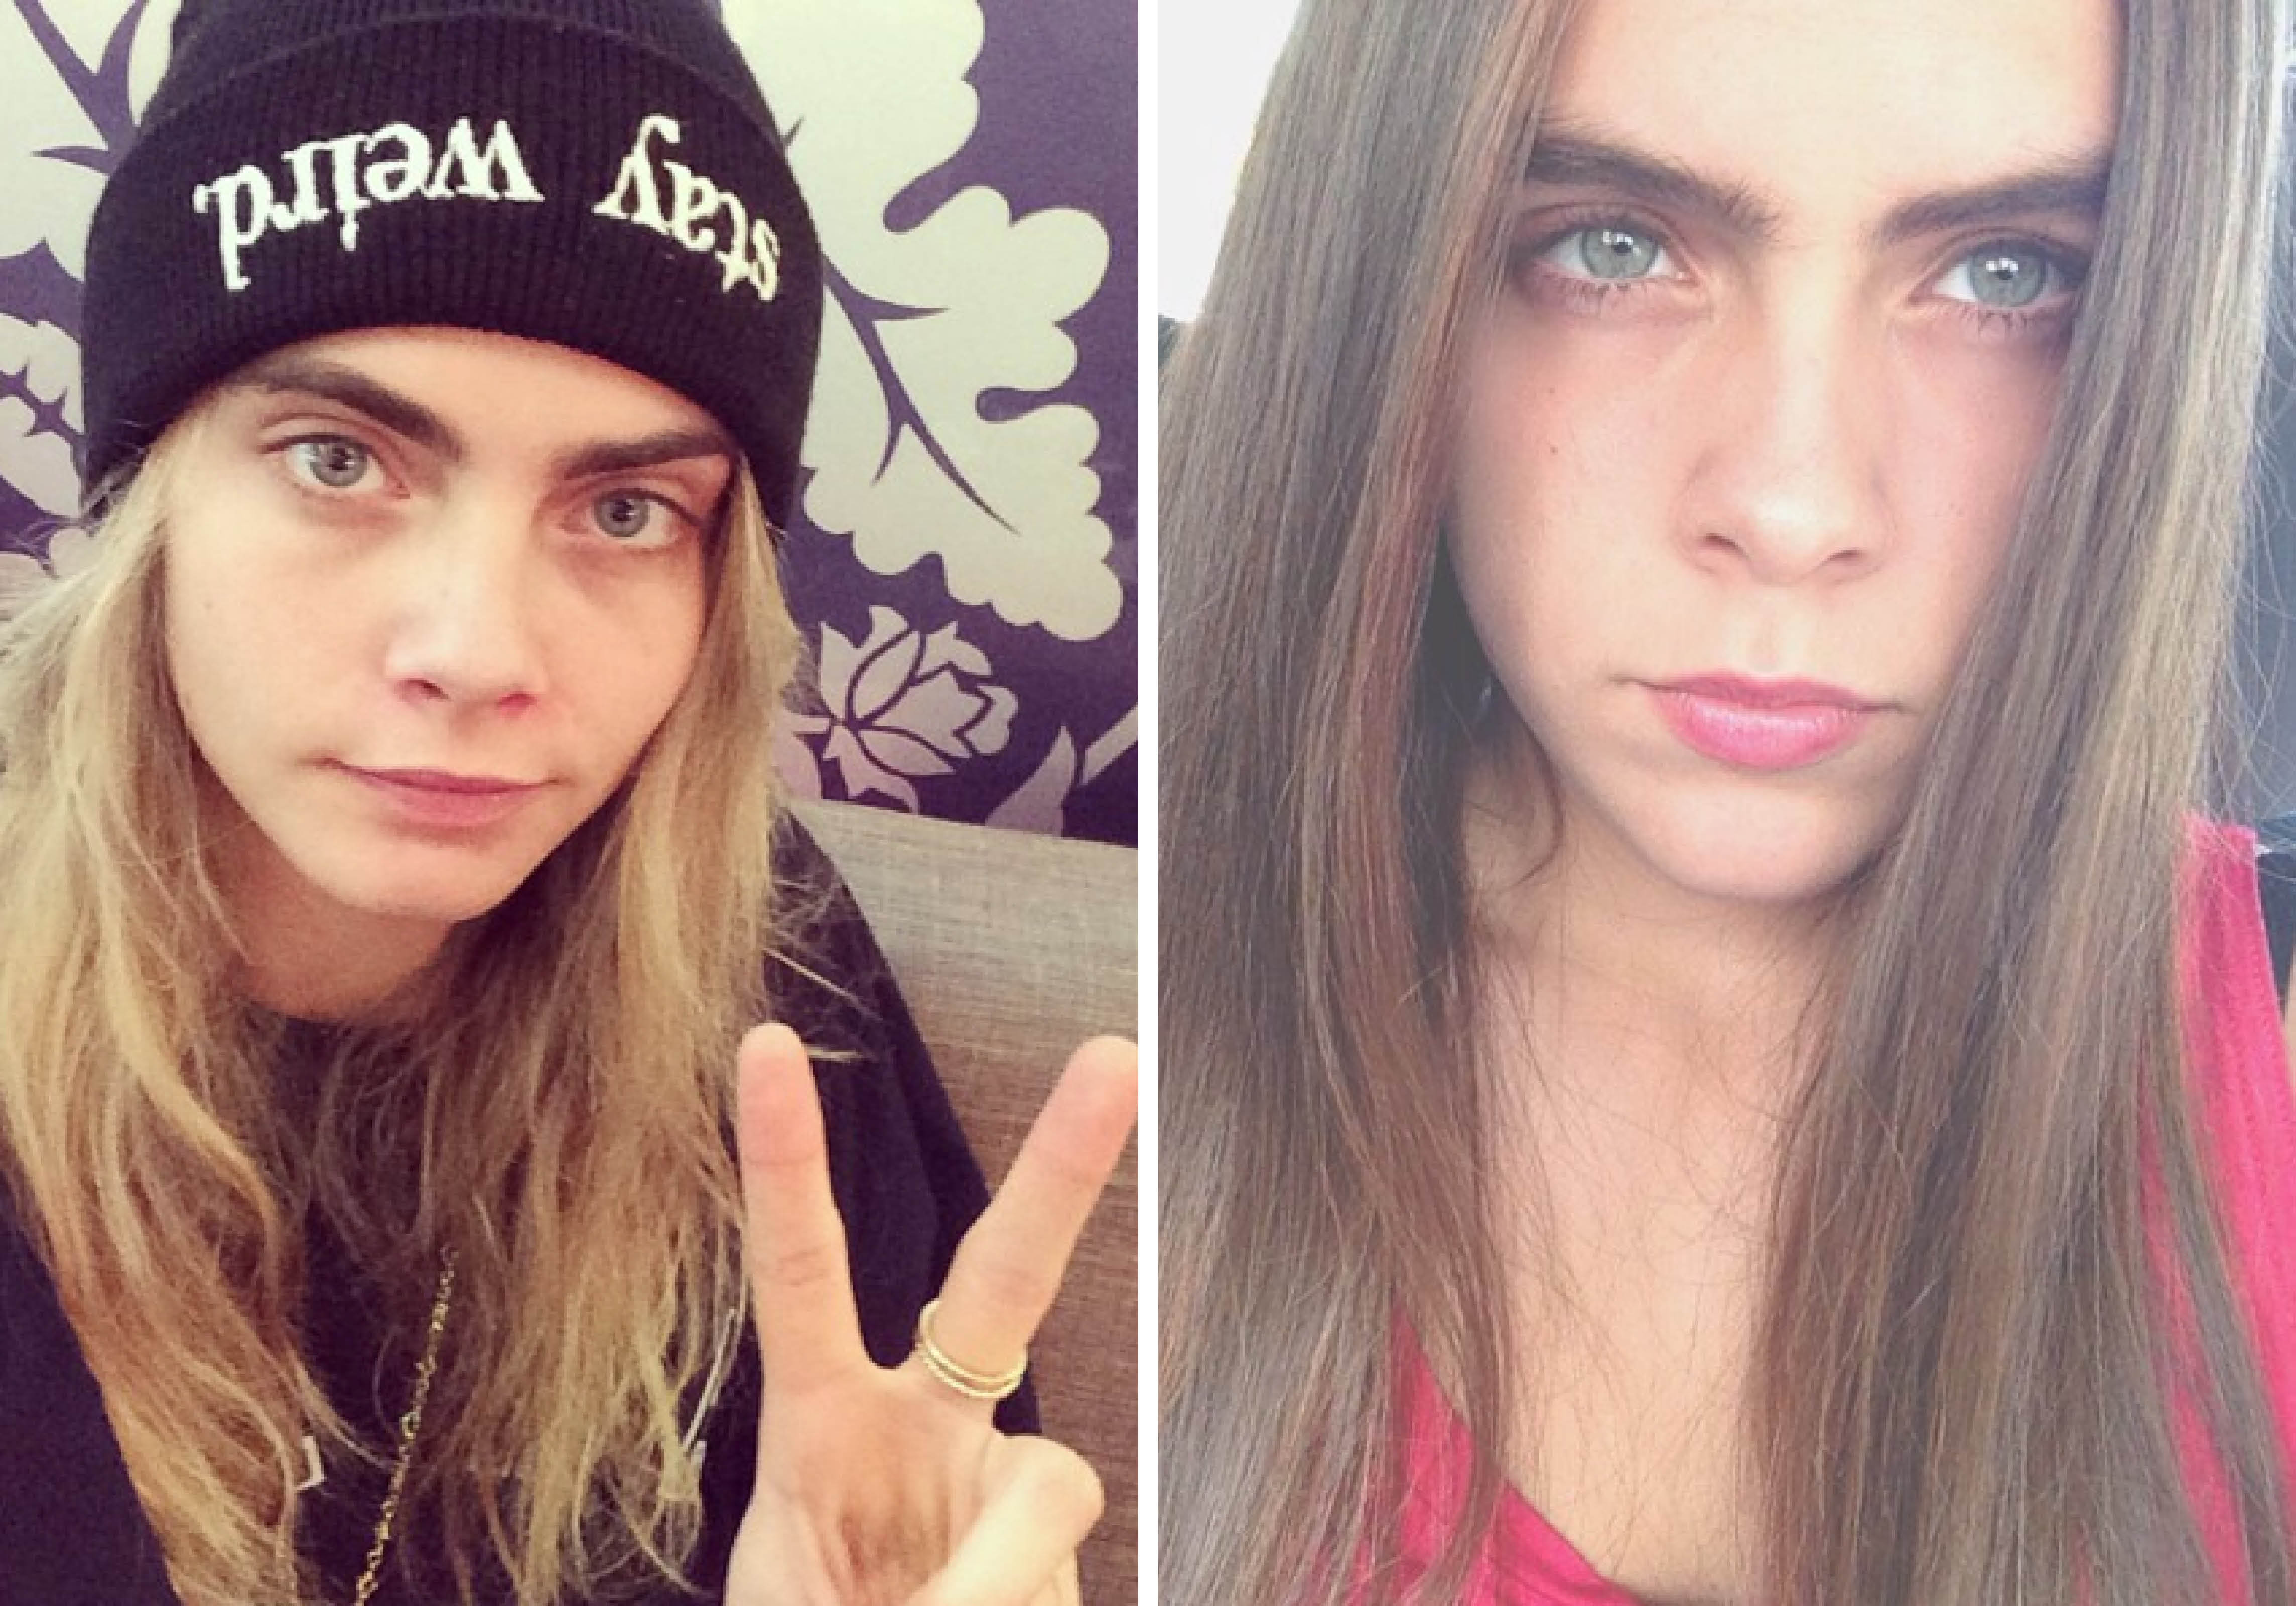 olivia herdt le sosie de cara delevingne sosie de star les c l brit s nous font voir double. Black Bedroom Furniture Sets. Home Design Ideas